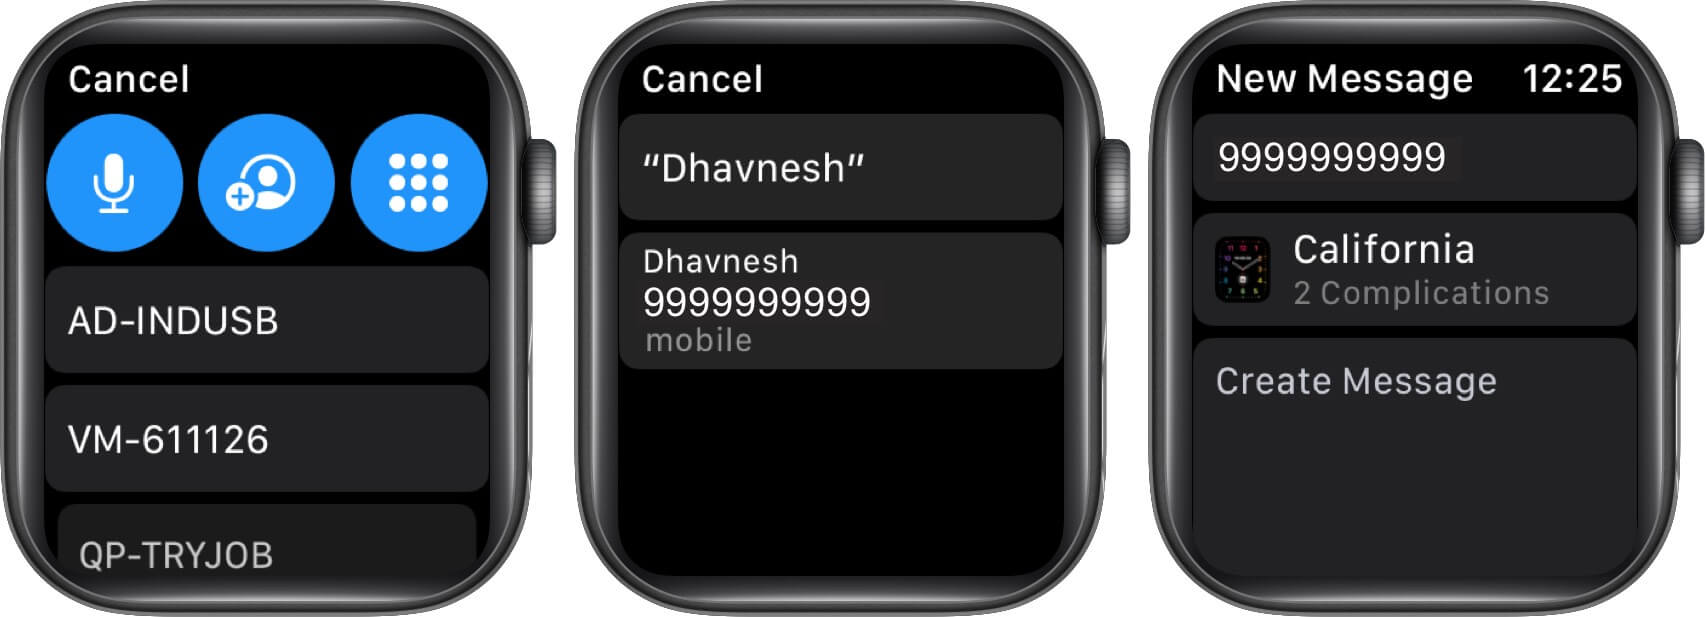 select contact and then tap on watch face in watchos 7 on apple watch